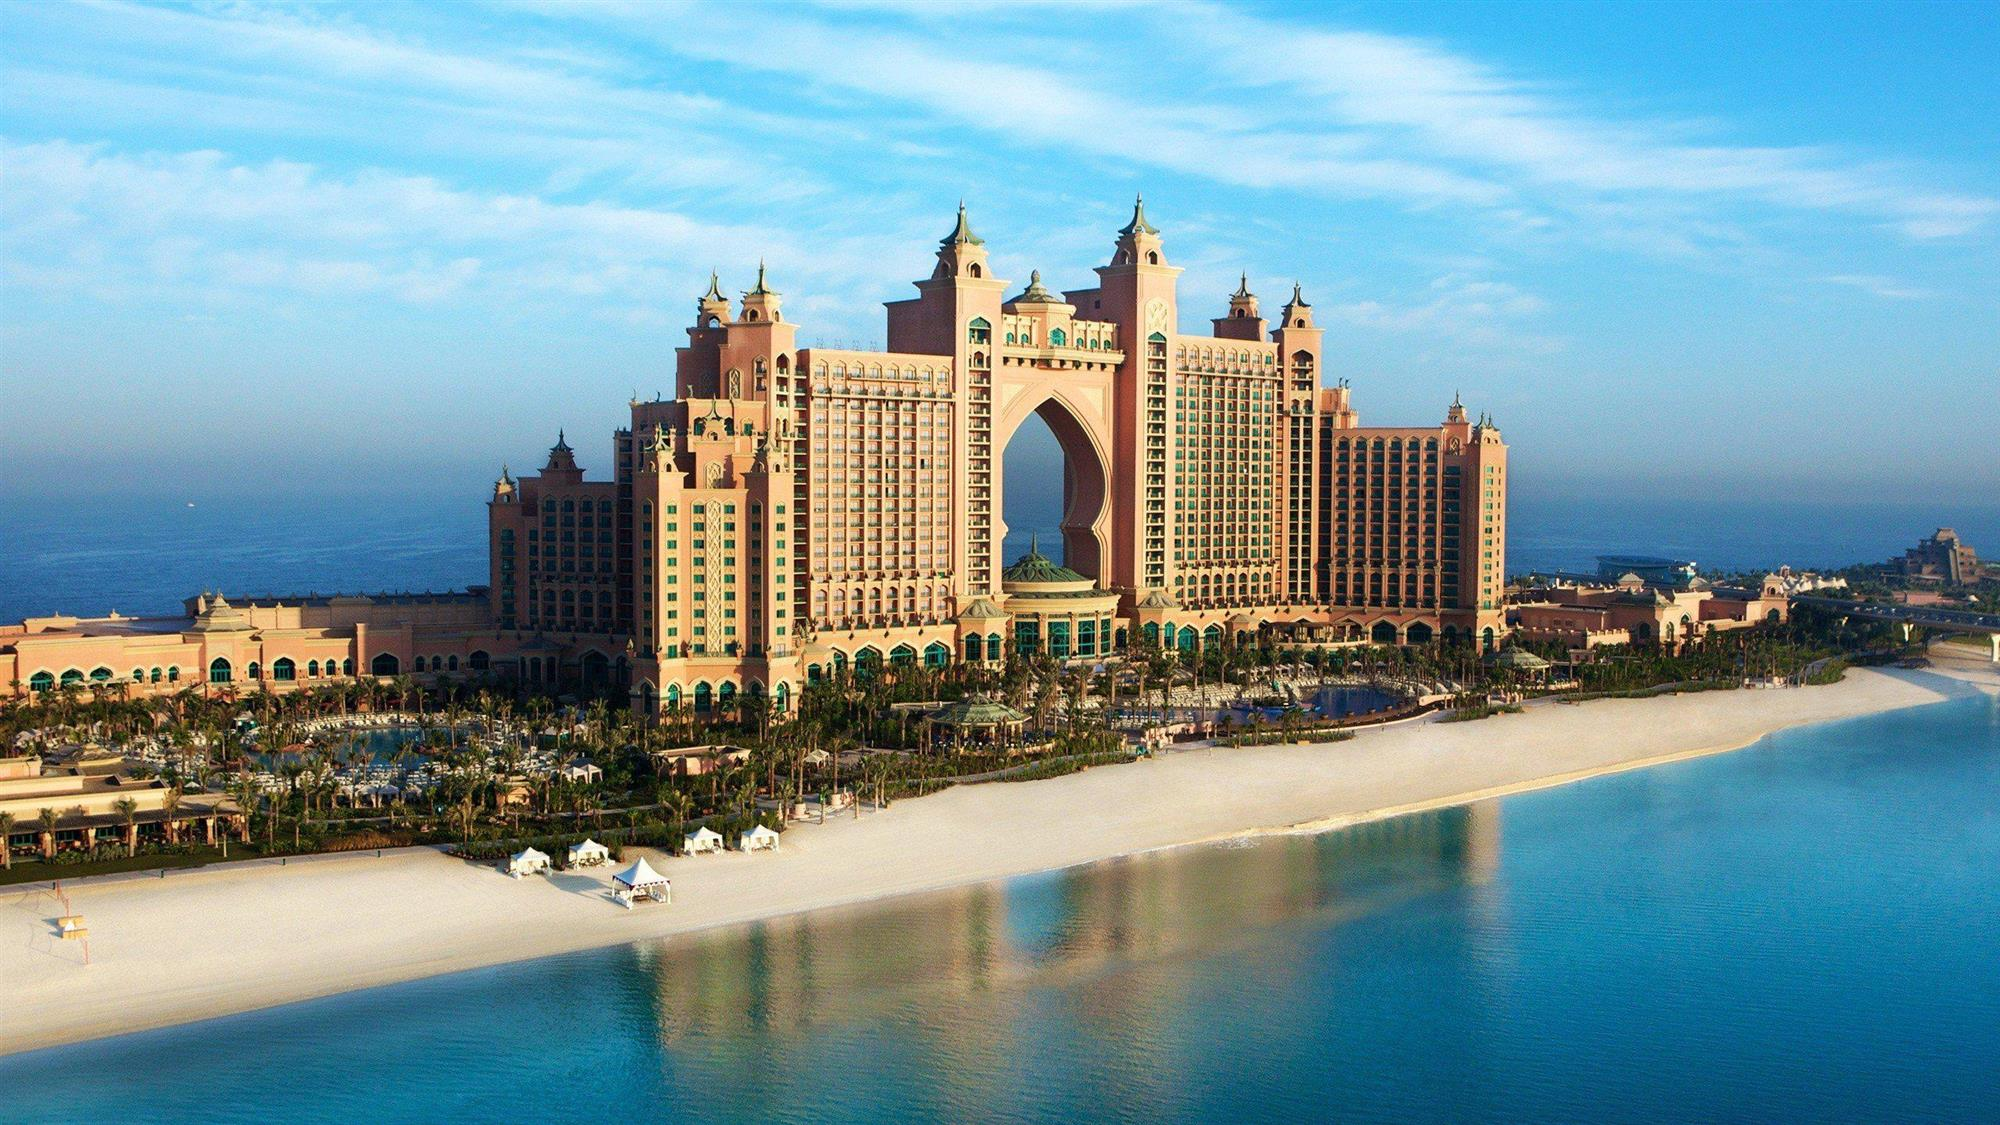 Atlantis, The Palm, Dubái, Emiratos Árabes Unidos